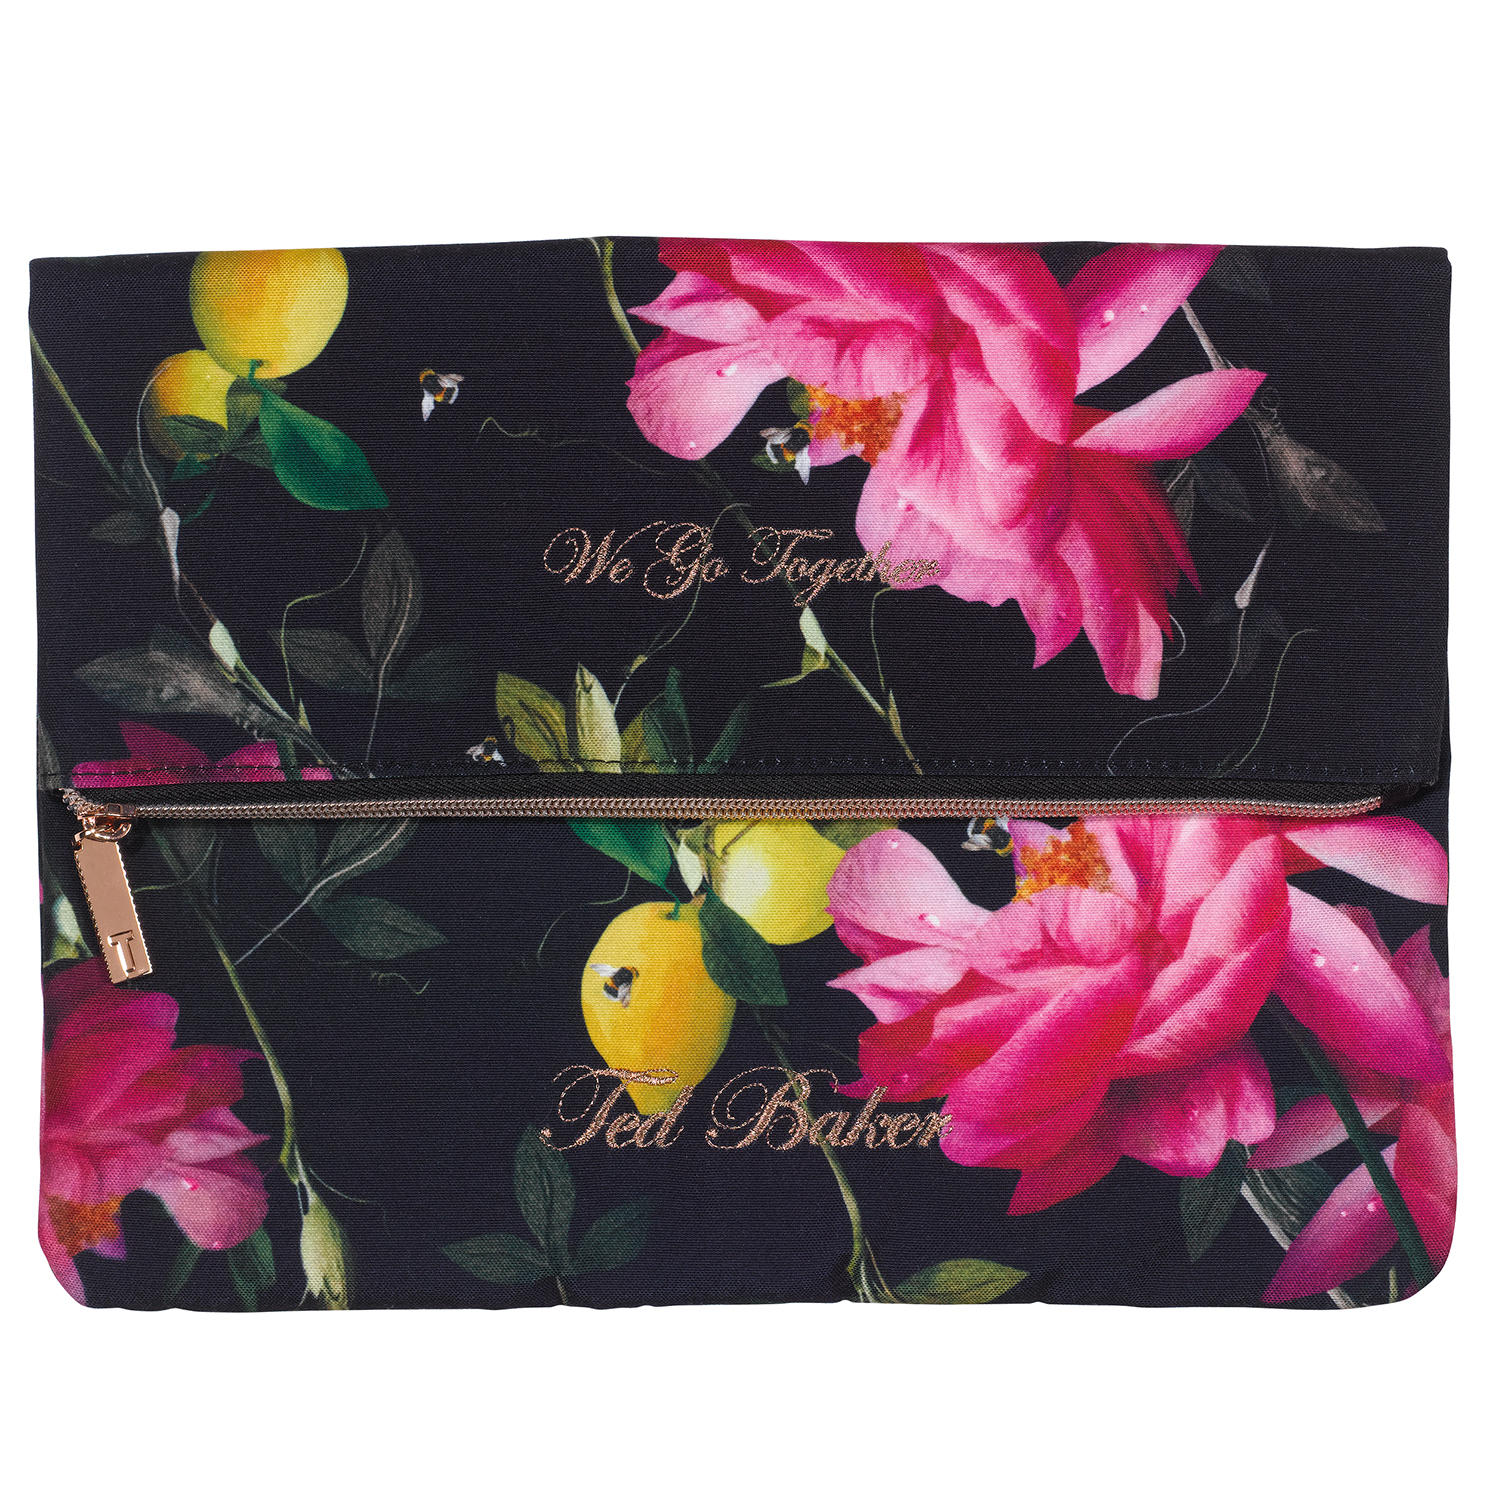 Ted Baker – Set of 3 Laundry/Toiletry Bags